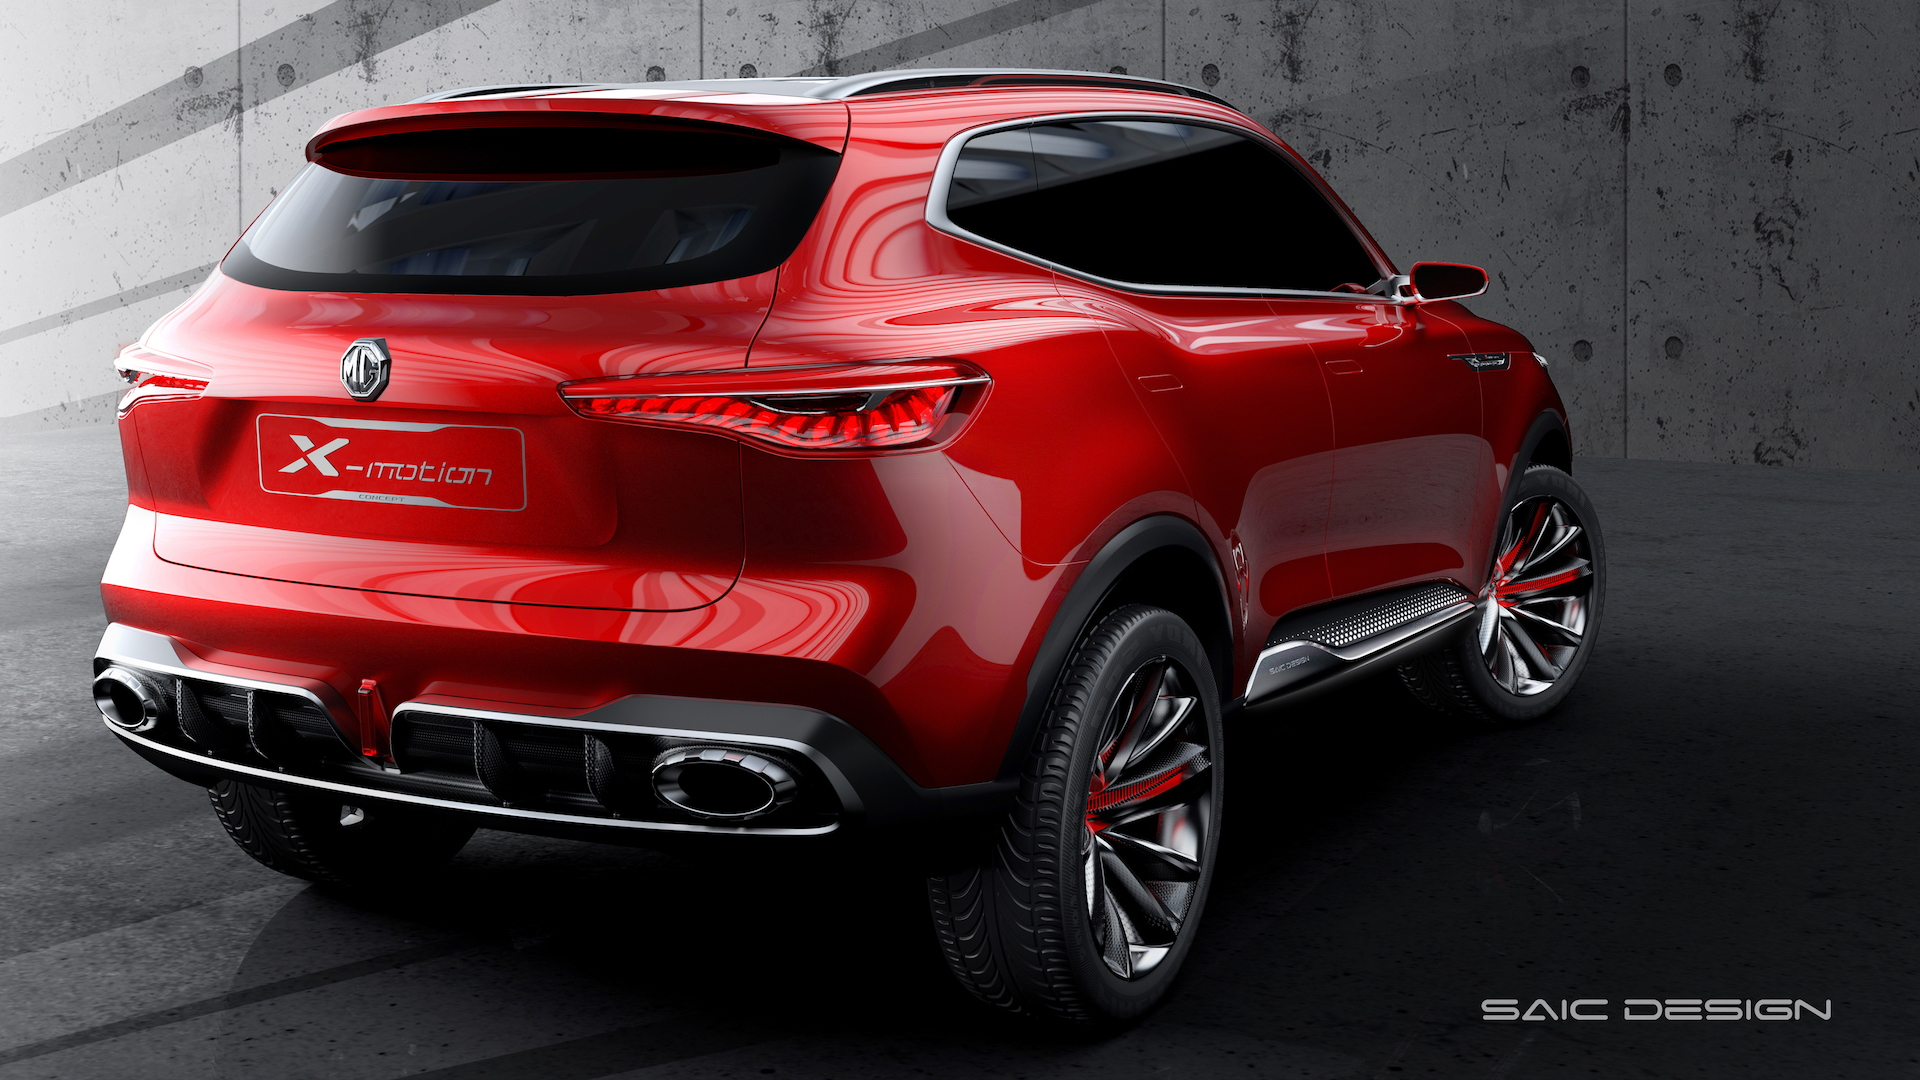 MG X-Motion SUV concept